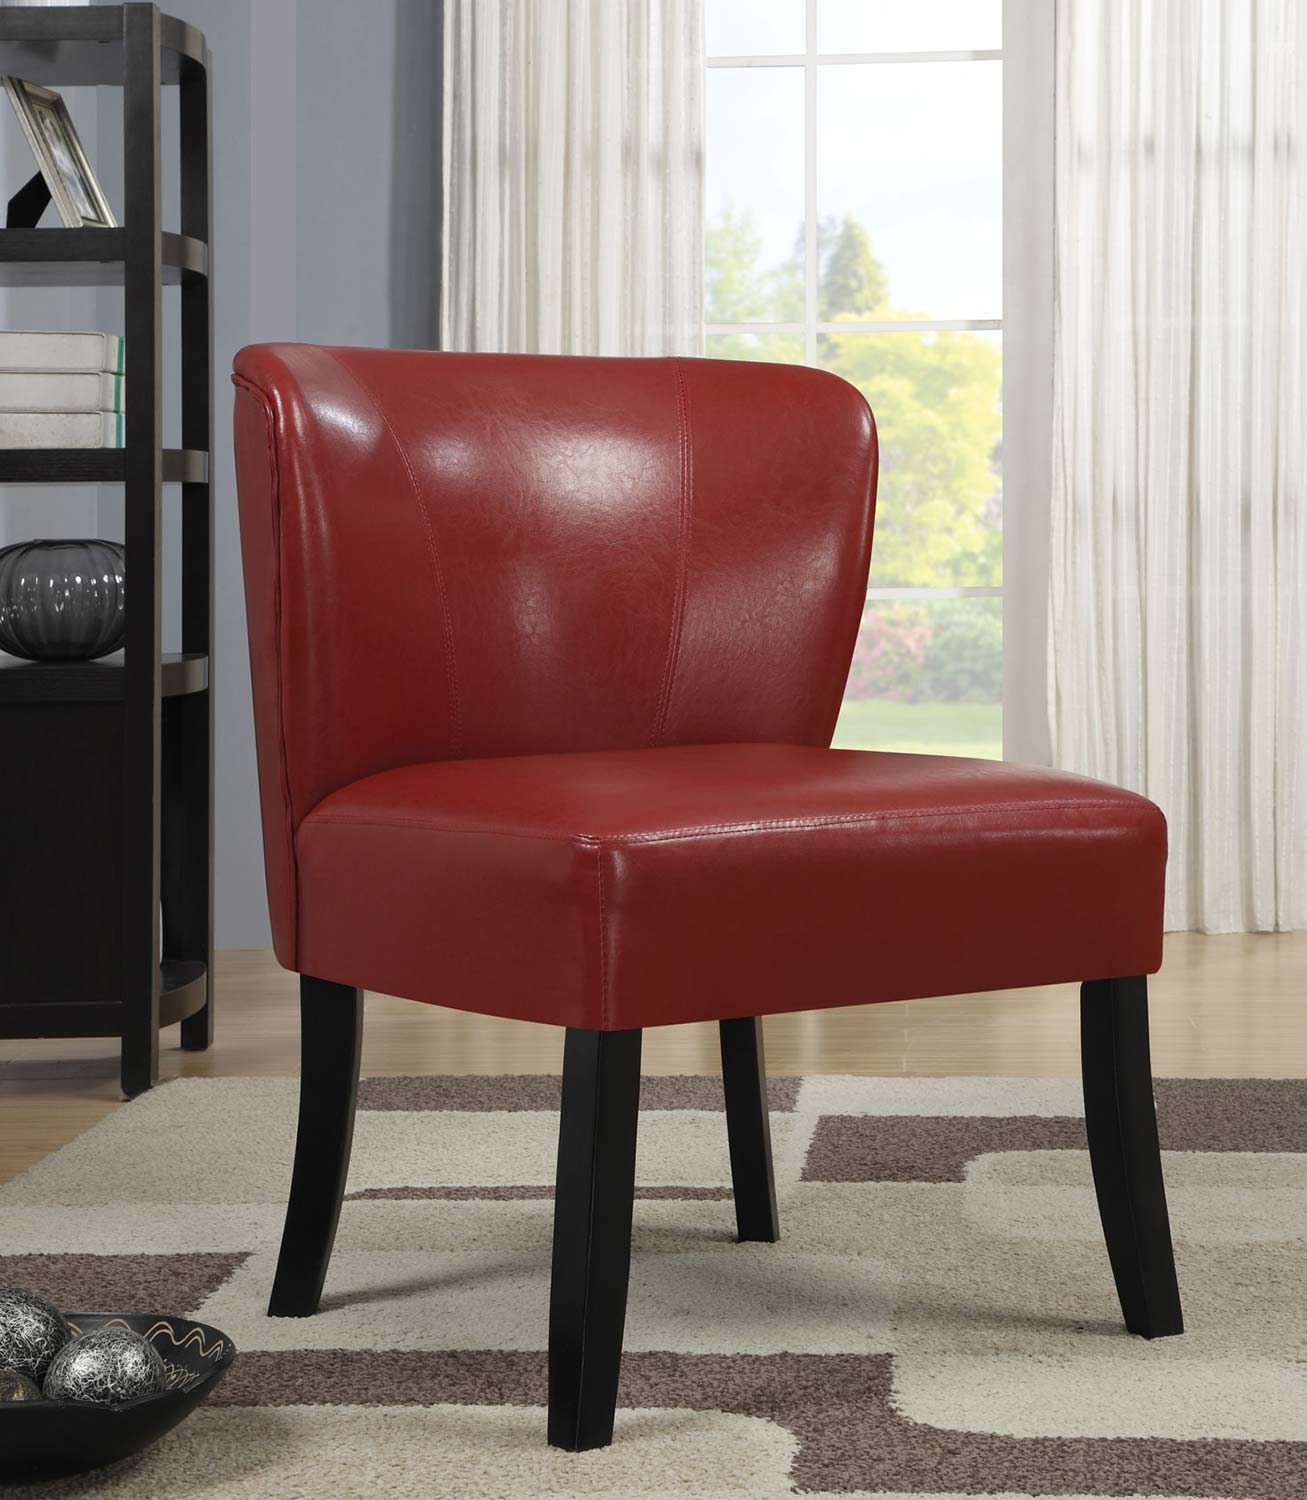 Coaster 902186 Accent Chair - Red